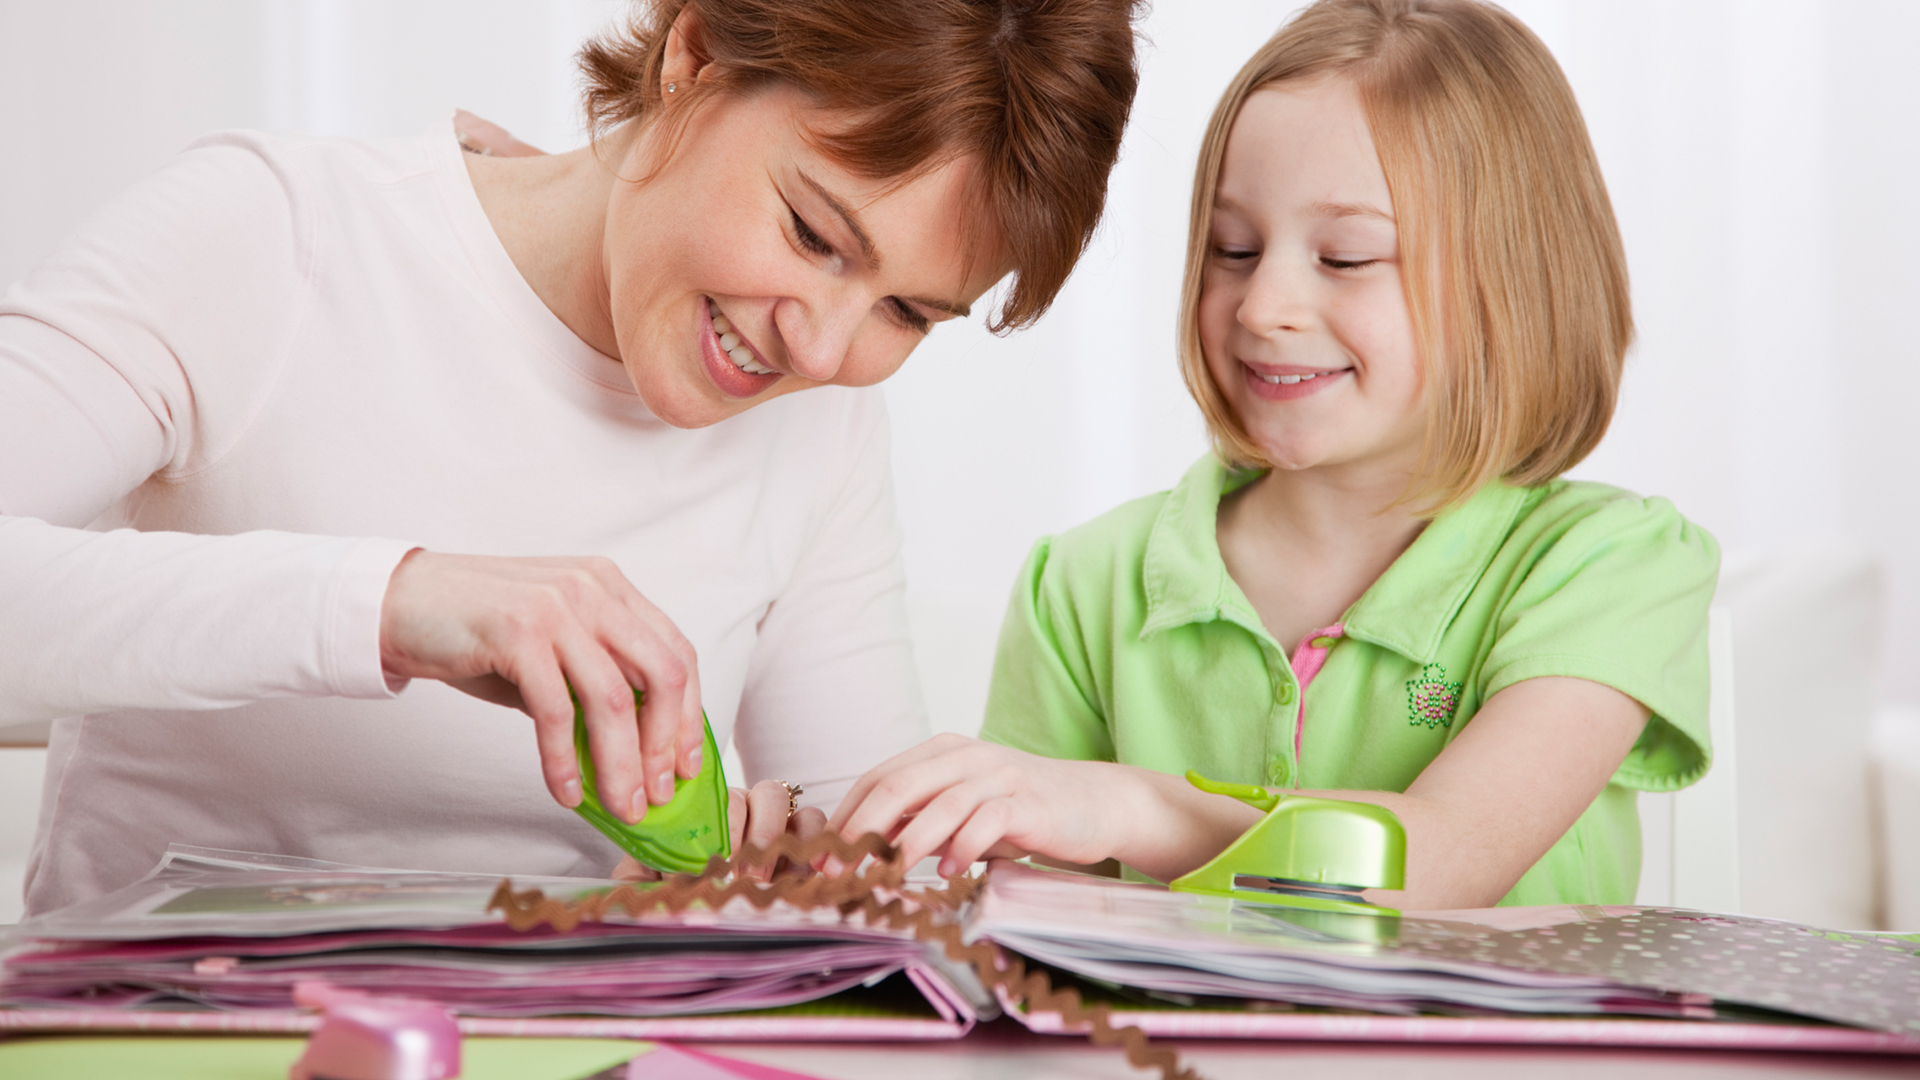 Woman scrapbooking with daughter | Sheknows.com